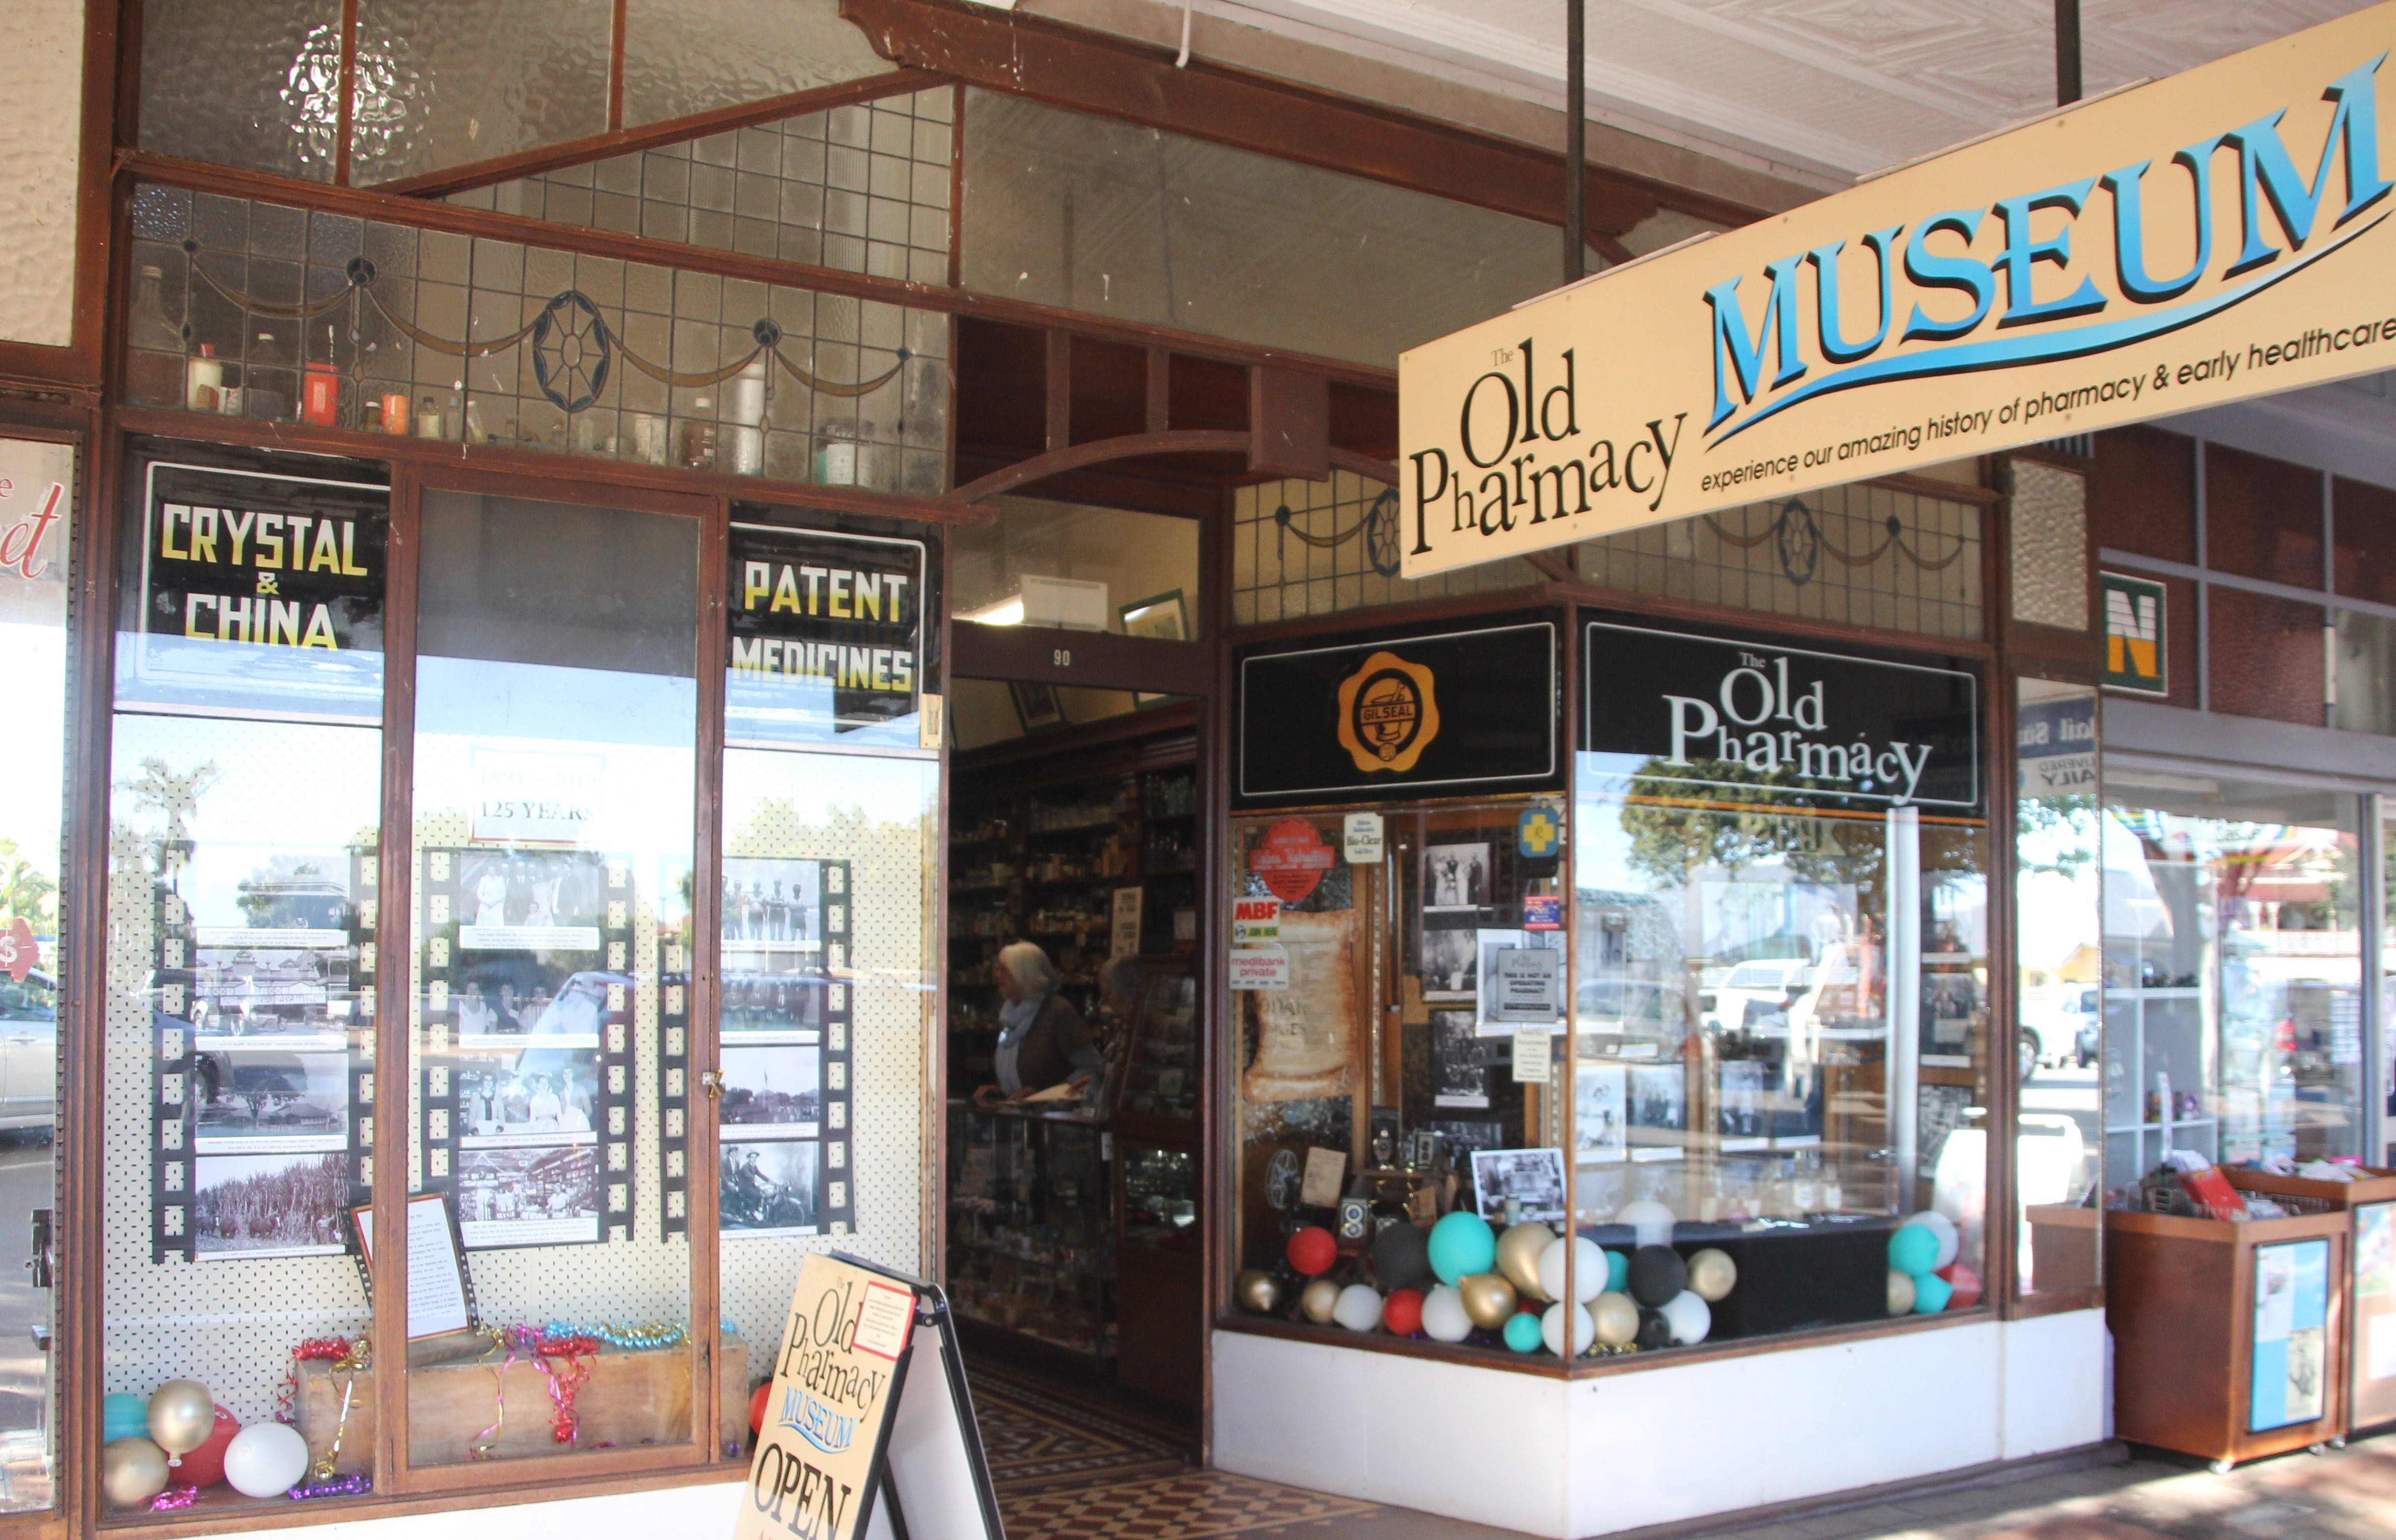 Old Pharmacy Museum  Childers - South Australia Travel